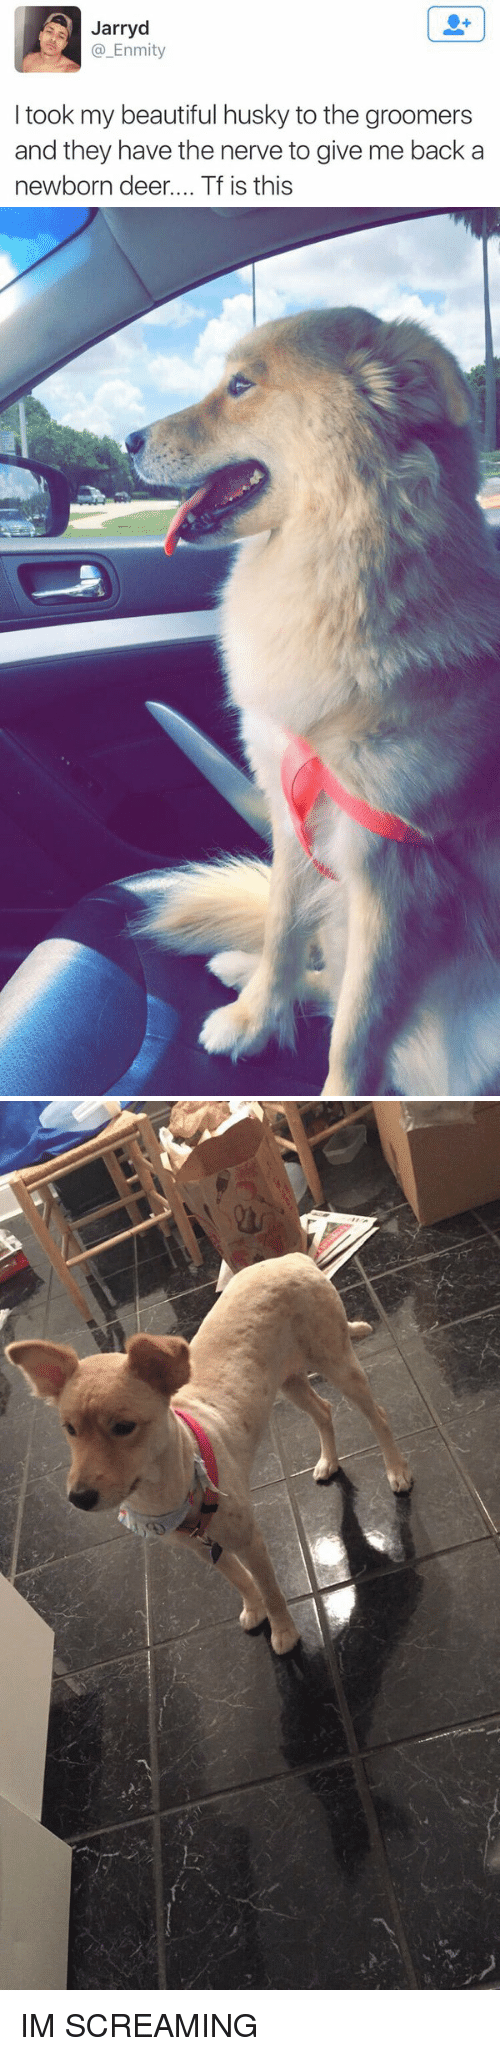 Groomers: A Jarryd  Enmity  I took my beautiful husky to the groomers  and they have the nerve to give me back a  newborn deer.... Tf is this IM SCREAMING